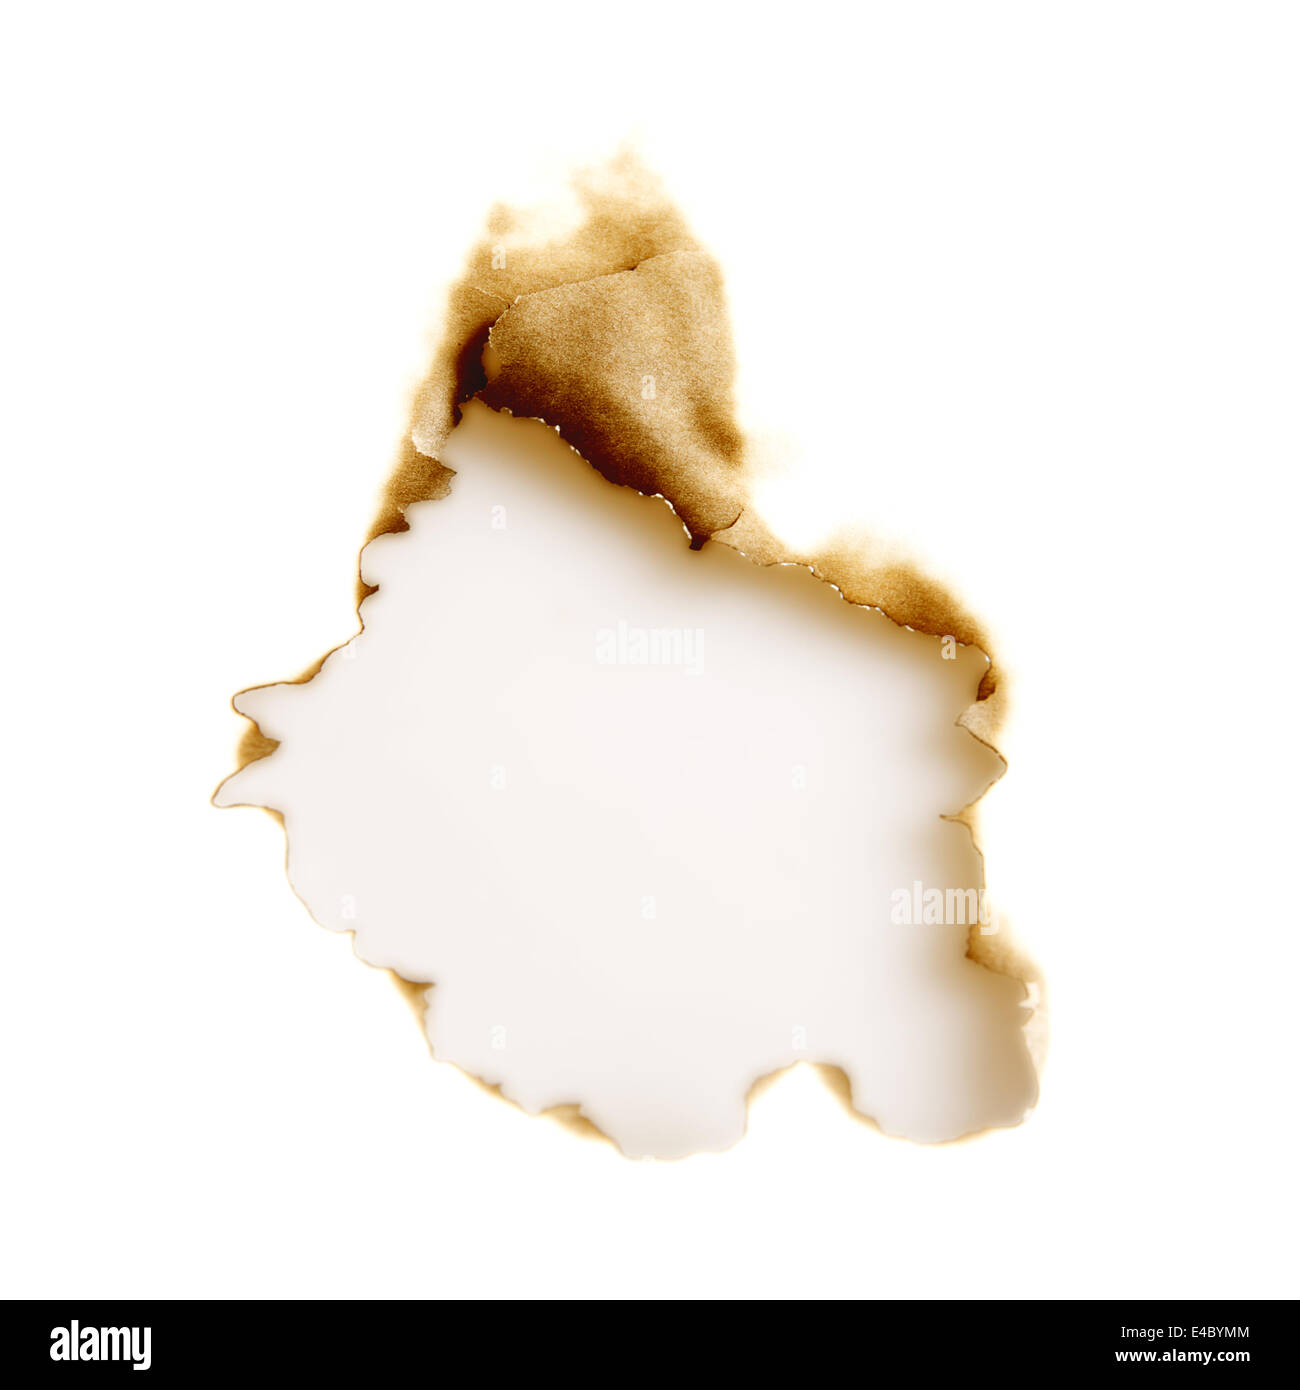 burnt hole in a white sheet of paper - Stock Image